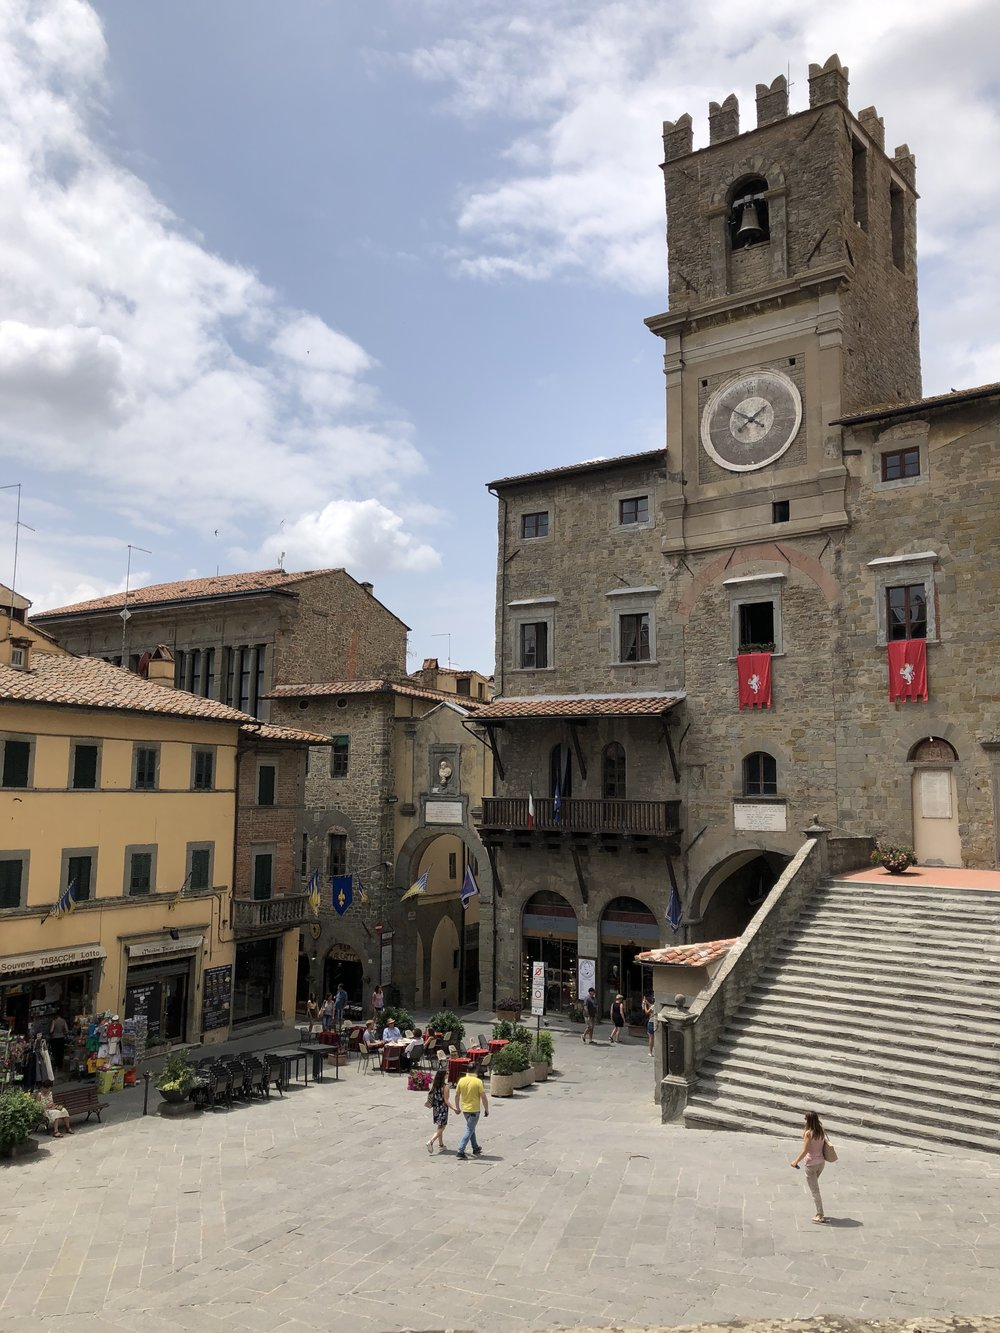 Our view at lunch: Republic Square with the 13th-century Cortona town hall